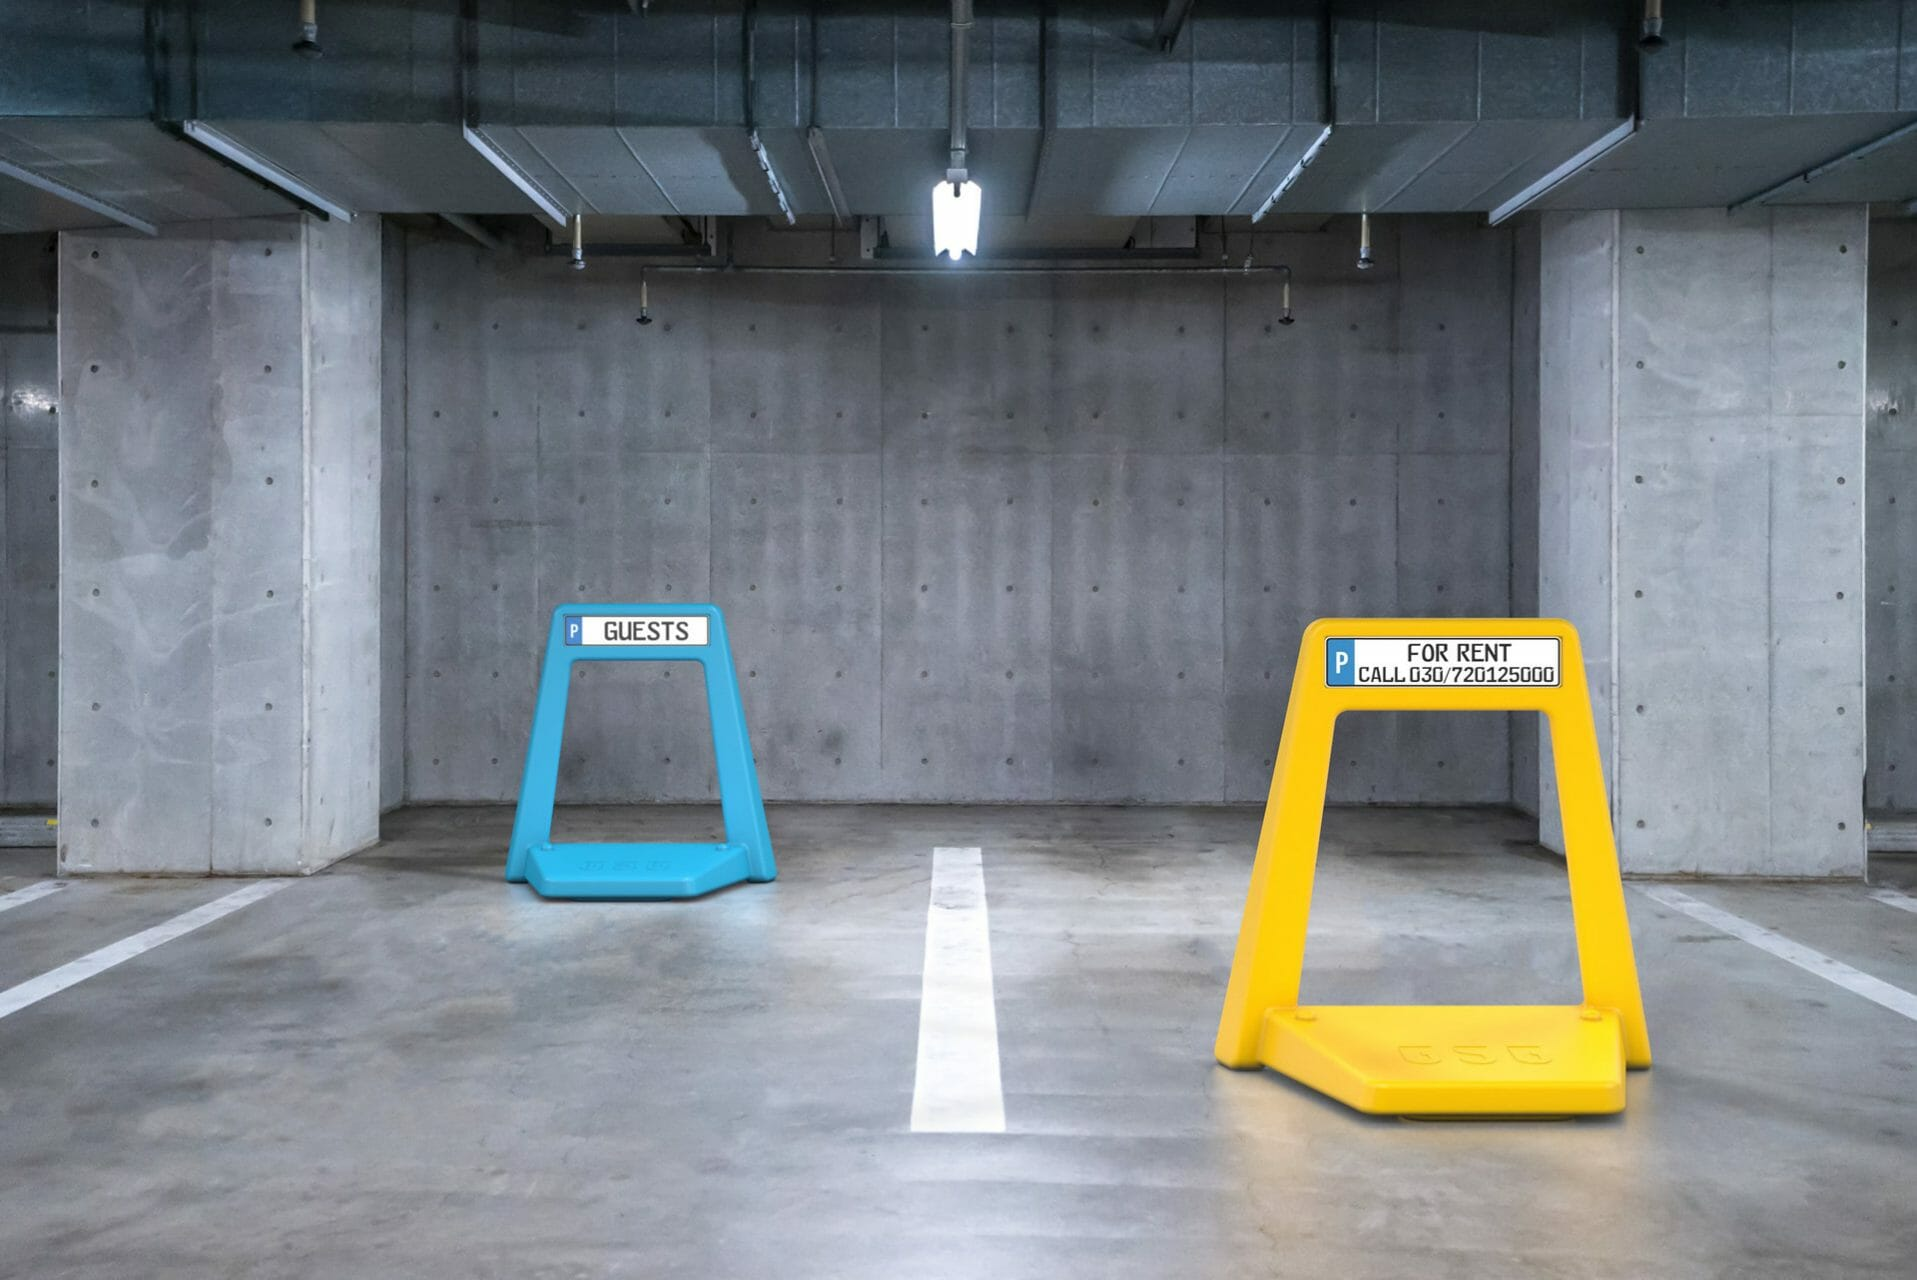 iondesign offers a new solution to parking chaos